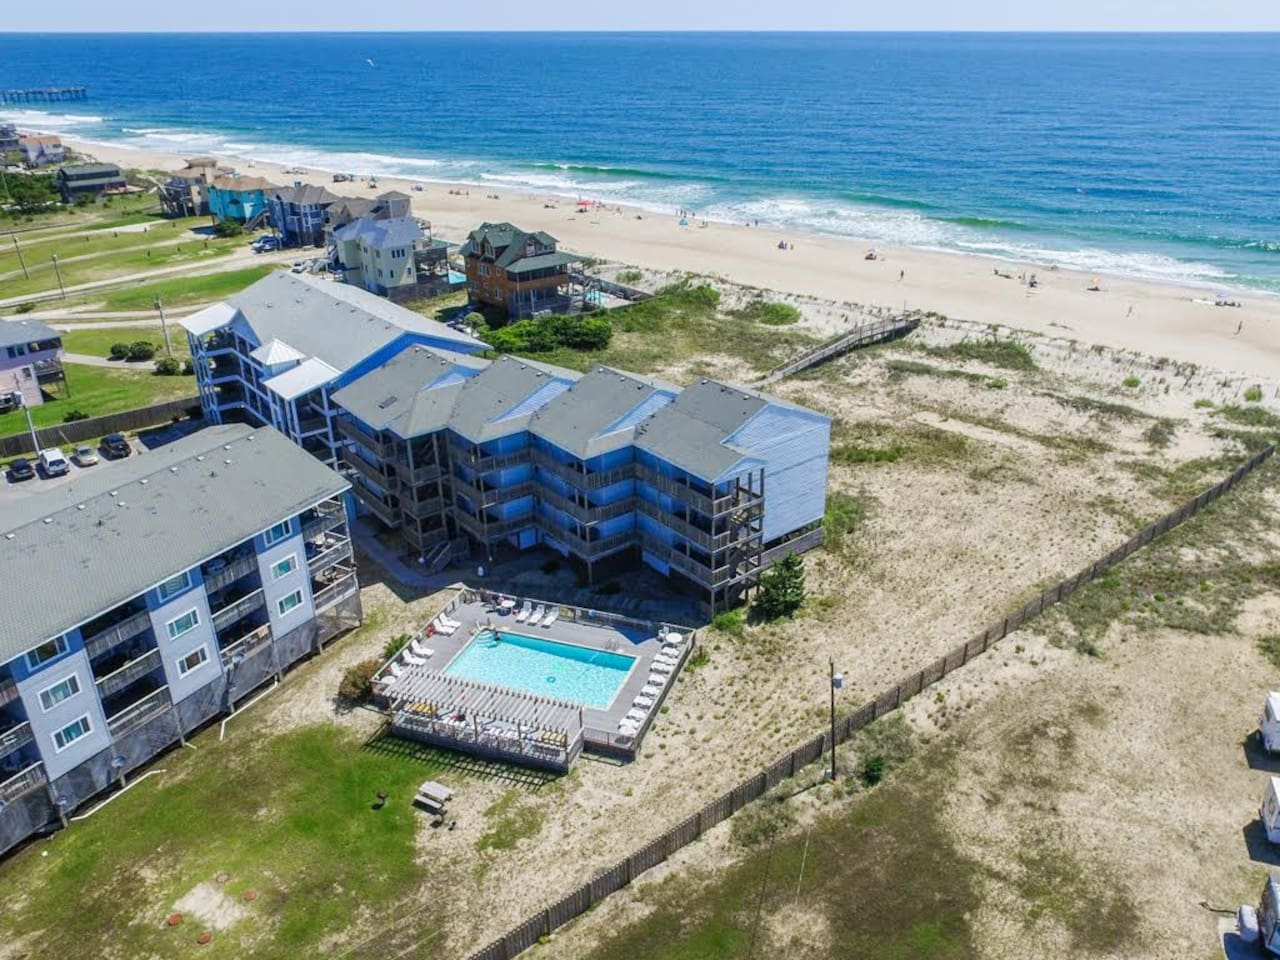 Hatteras High Property Overview